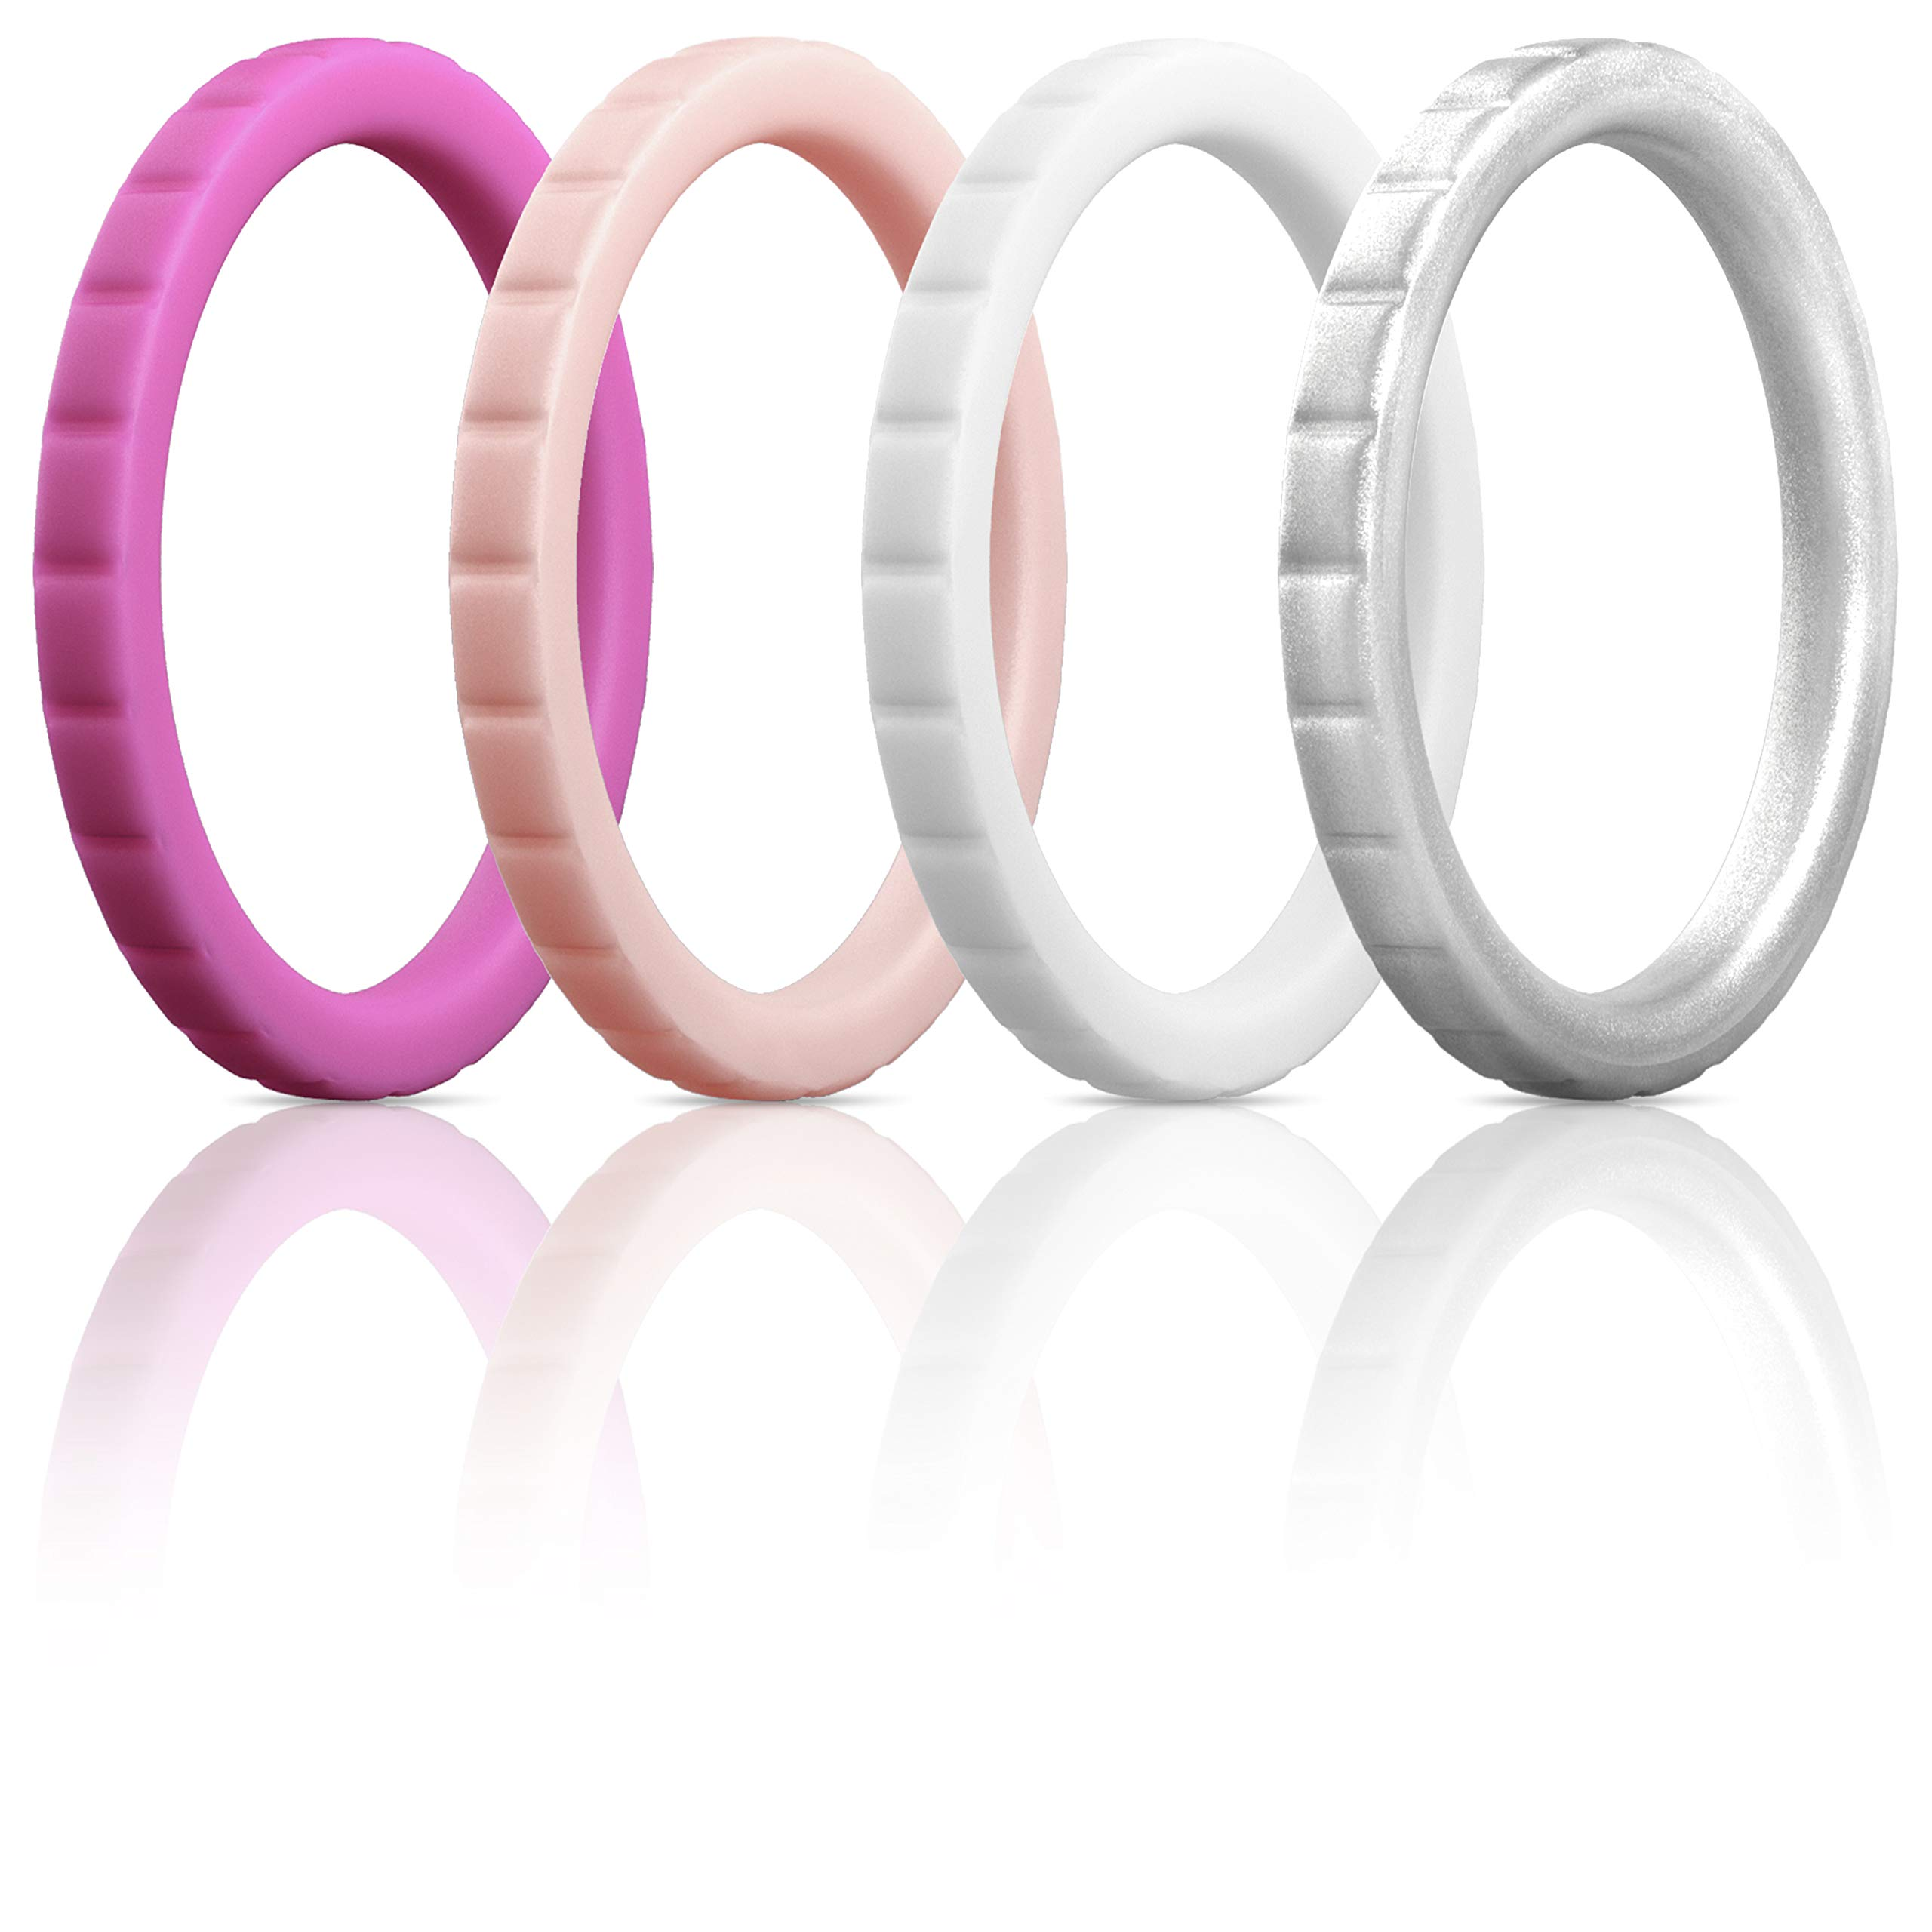 ThunderFit Womens Thin Square Diamond Rings, 8 Rings / 4 Rings / 1 Ring | Stackable Silicone Wedding Rings 2.8mm Wide - 2mm Thick